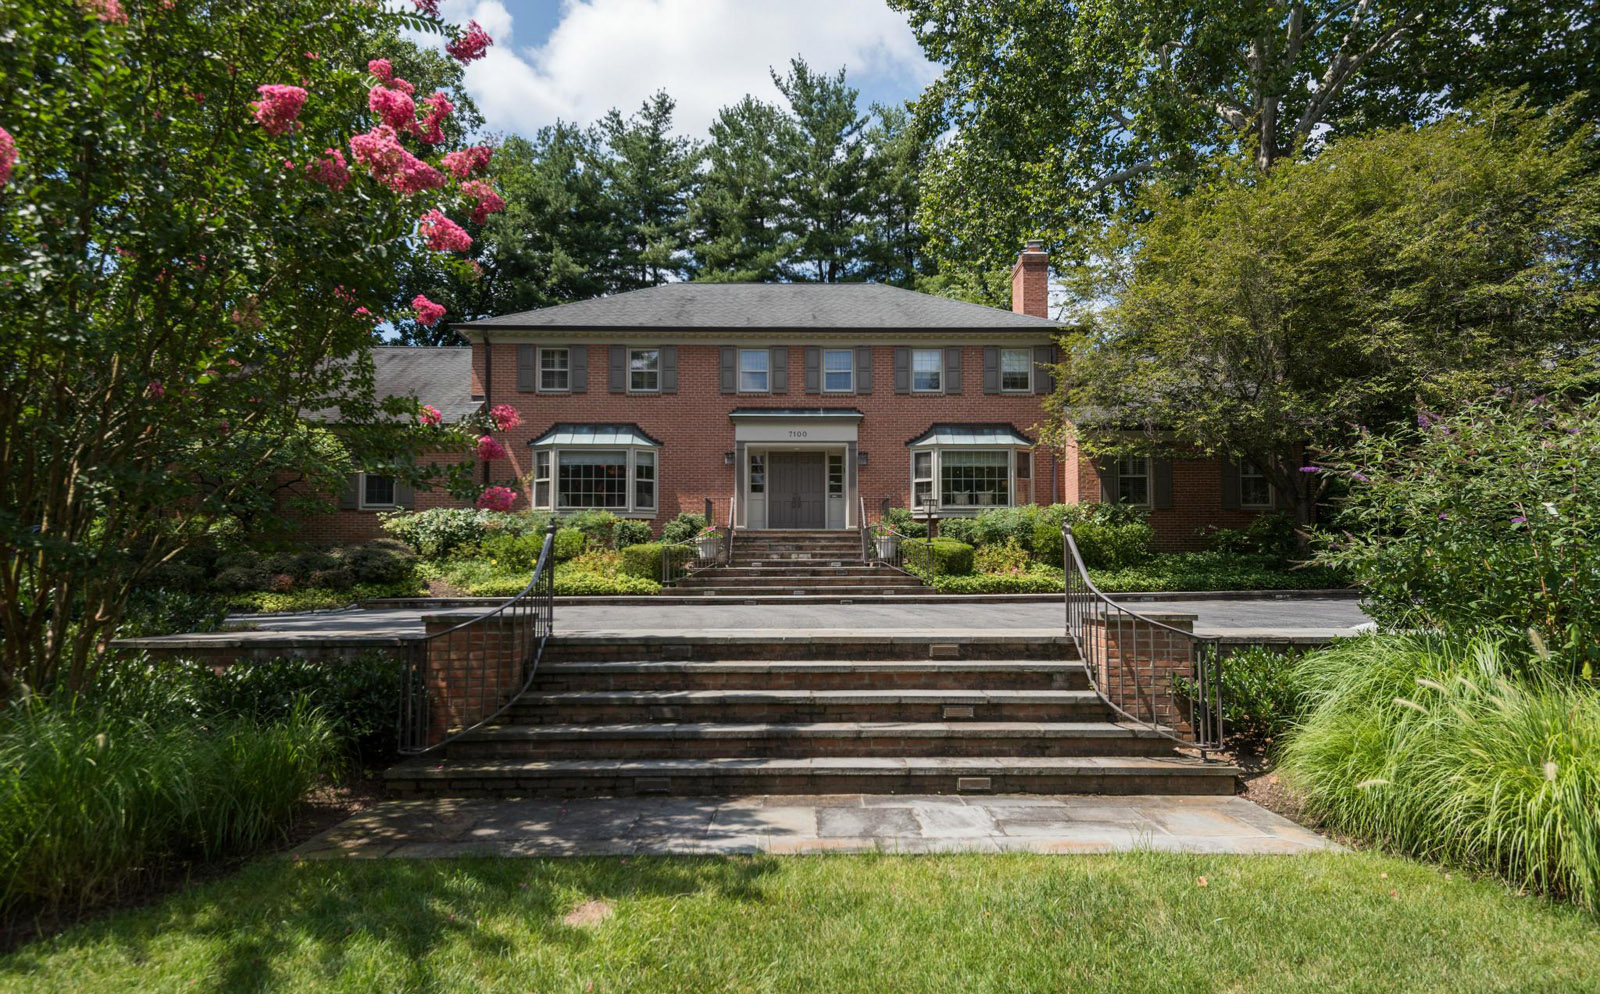 7100 GLENBROOK ROAD       The six-bedroom colonial at 7100 Glenbrook Road in Bethesda sold for $2.8 million in November. Built in 1970, the home features five full baths and three half baths.    (Courtesy MRIS)